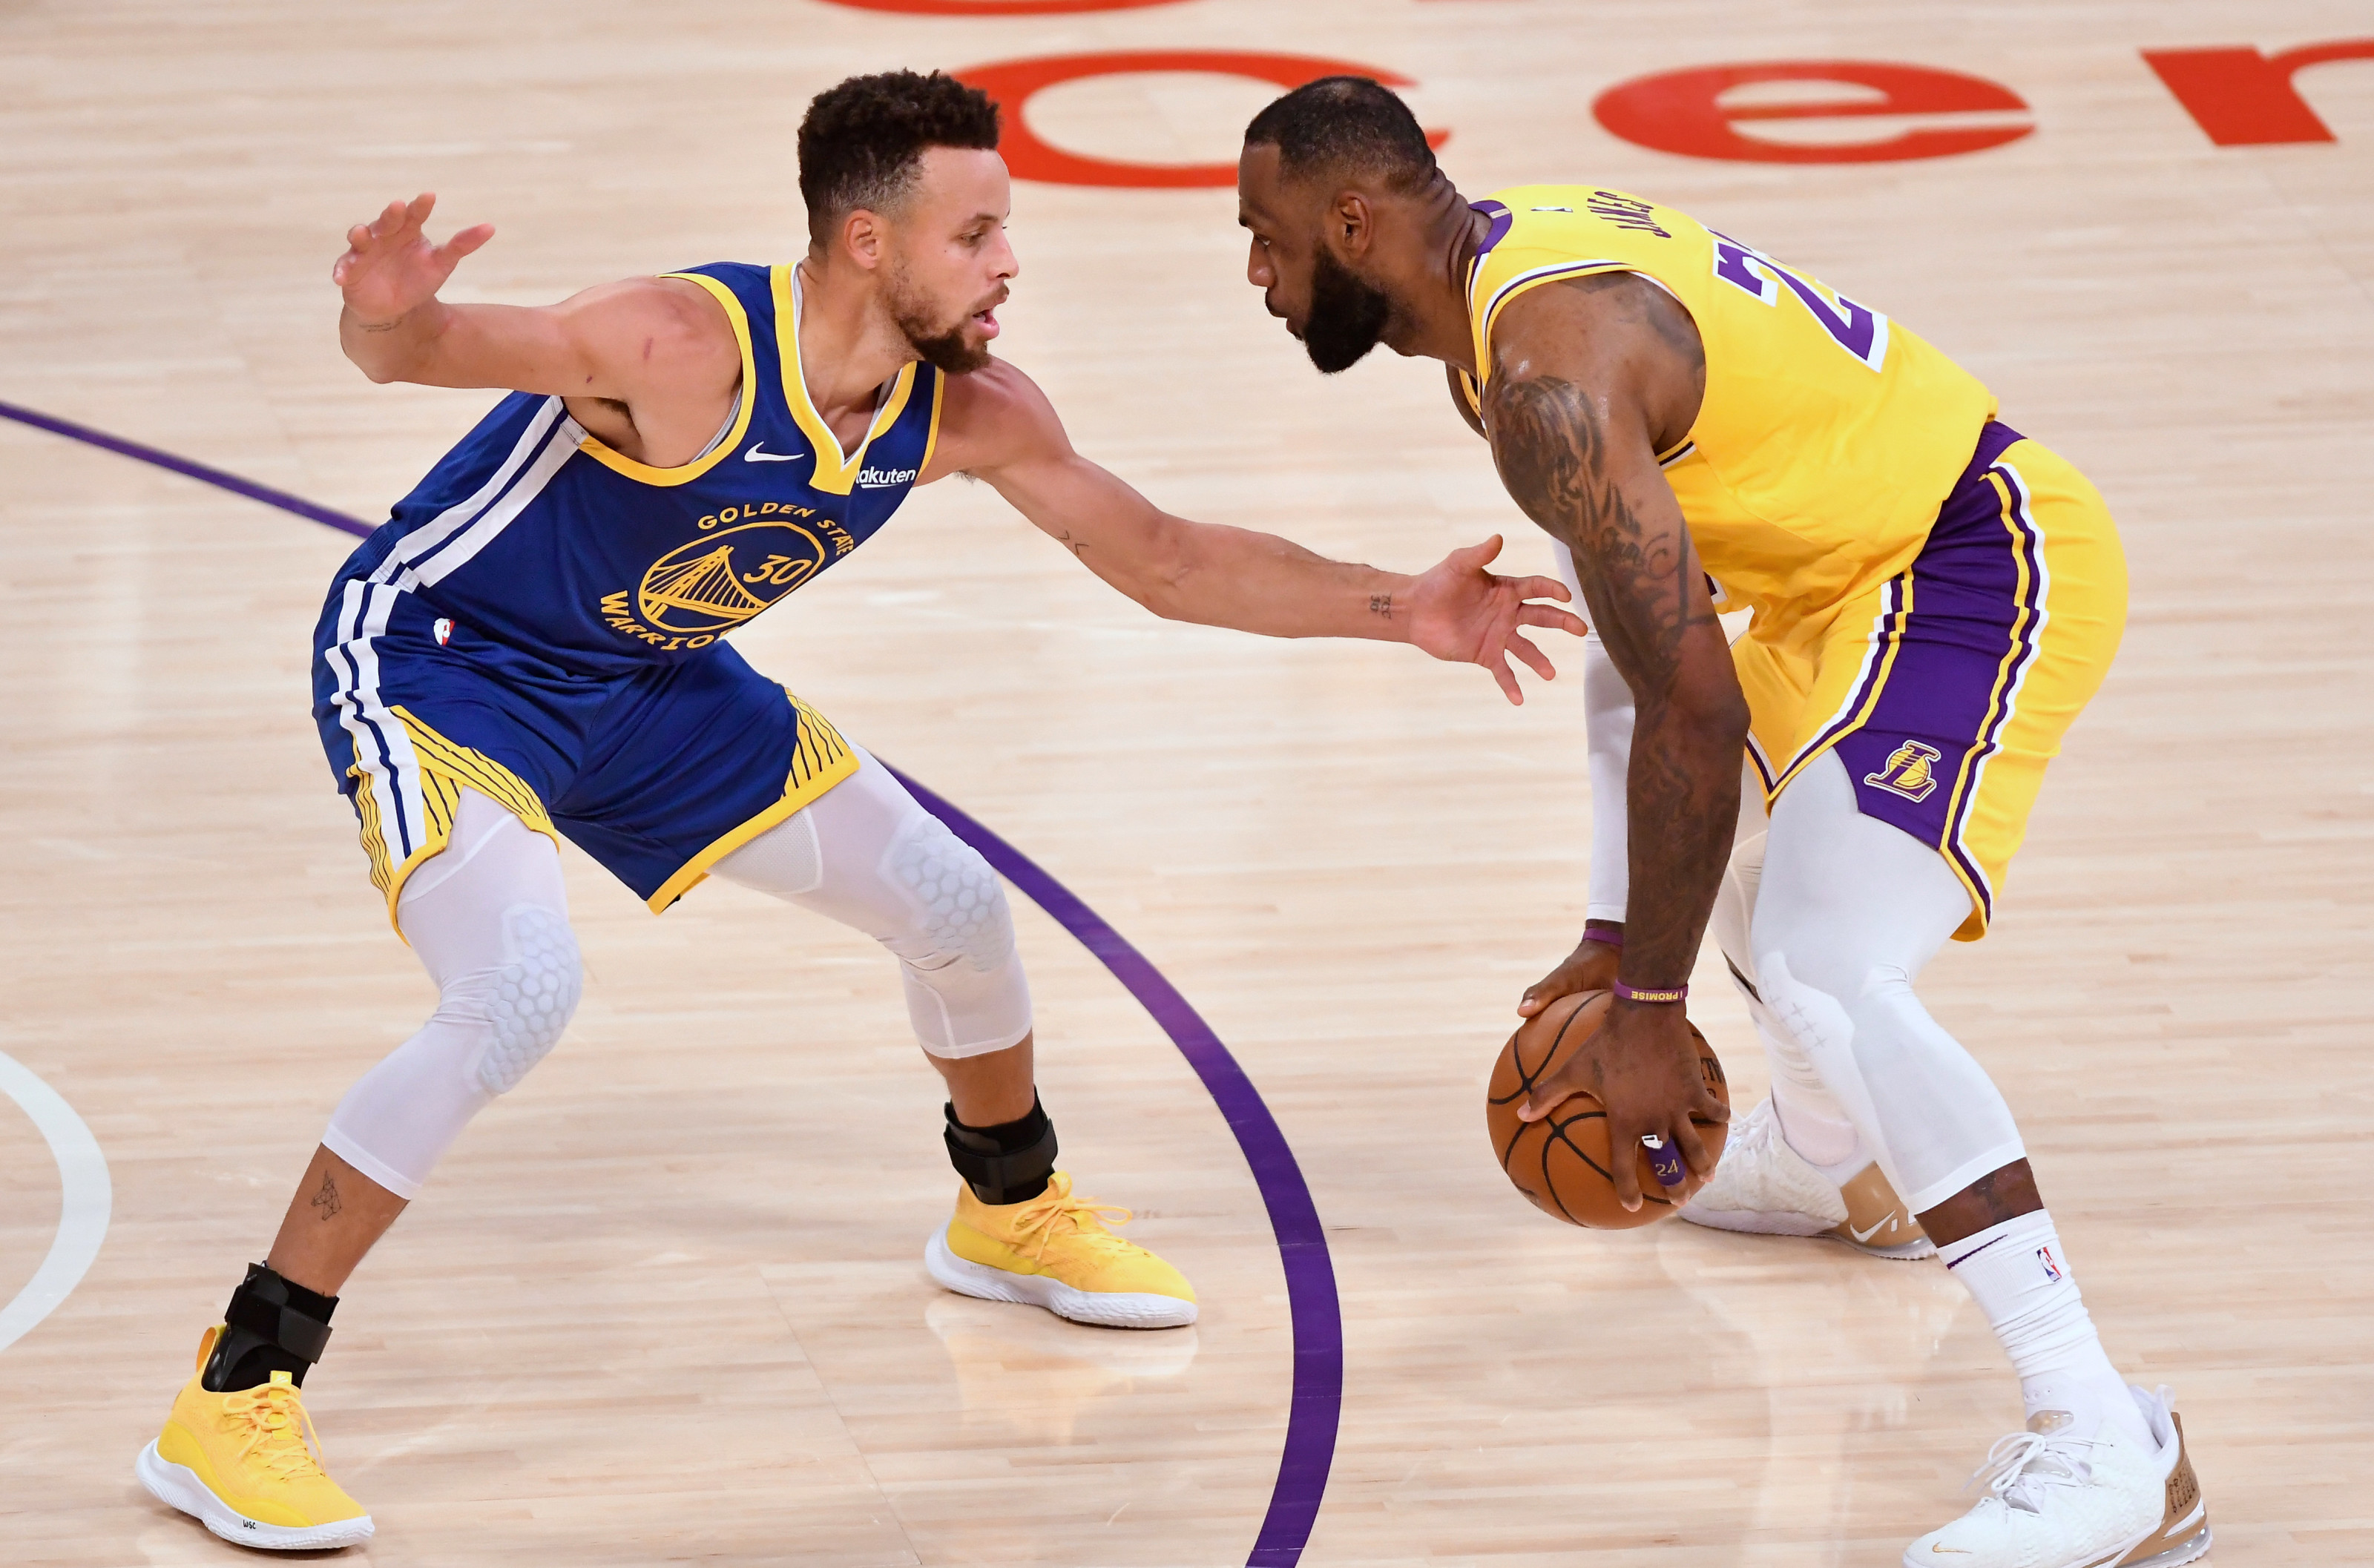 Postgame lakers warriors betting france nigeria betting line